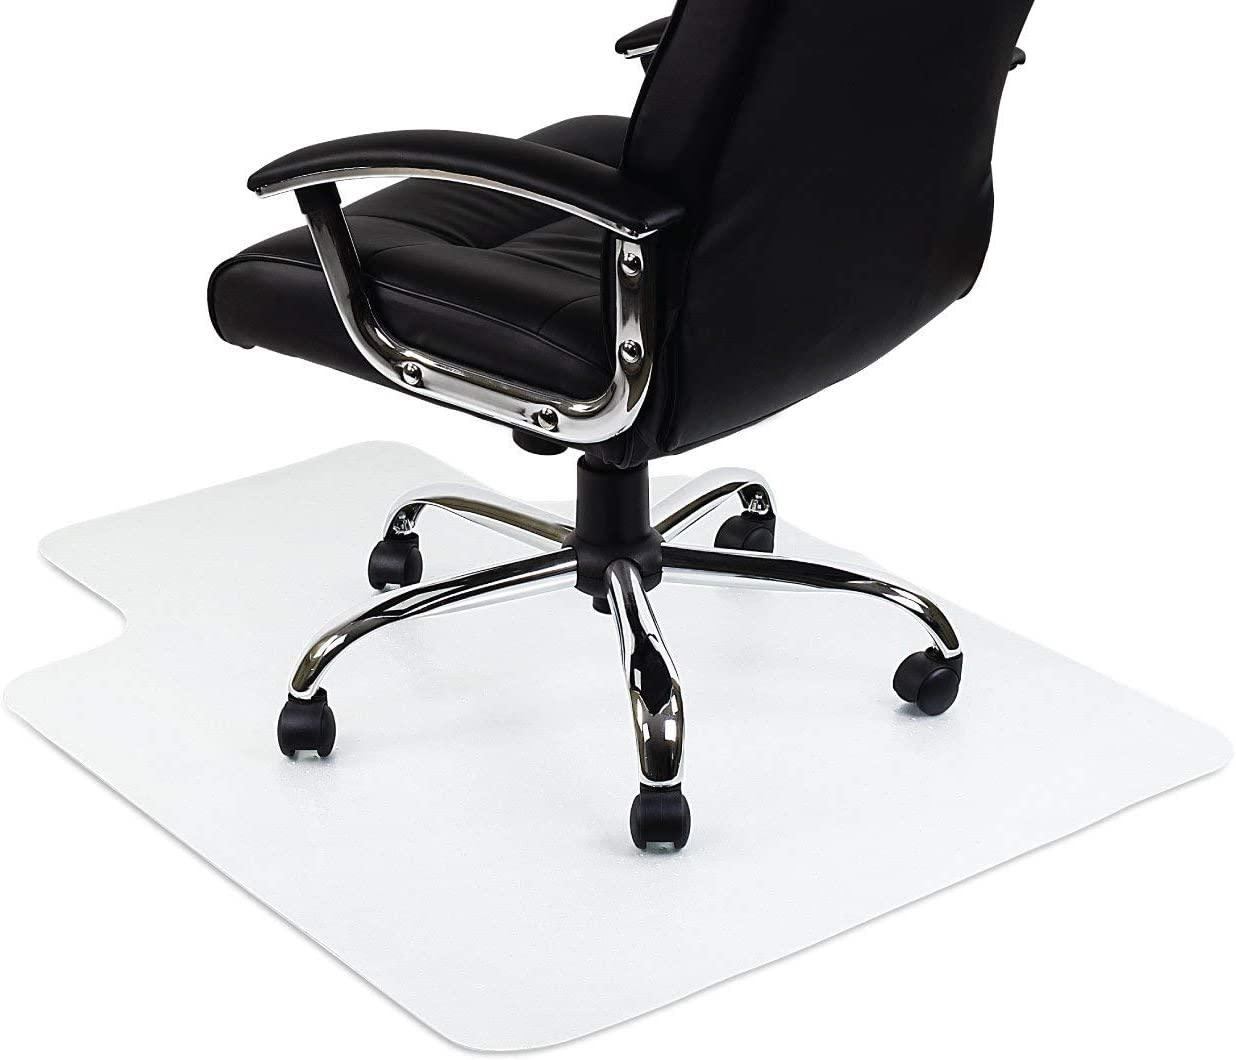 Chair Mats Home Kitchen 16x24inch Clear Office Chair Mat For Carpet Hardwood Floor Pvc Rectangular Lip Anti Slip Floor Mat For Tables And Chairs Home Parquet Floor Floor Protector 1 5mm 40x60cm